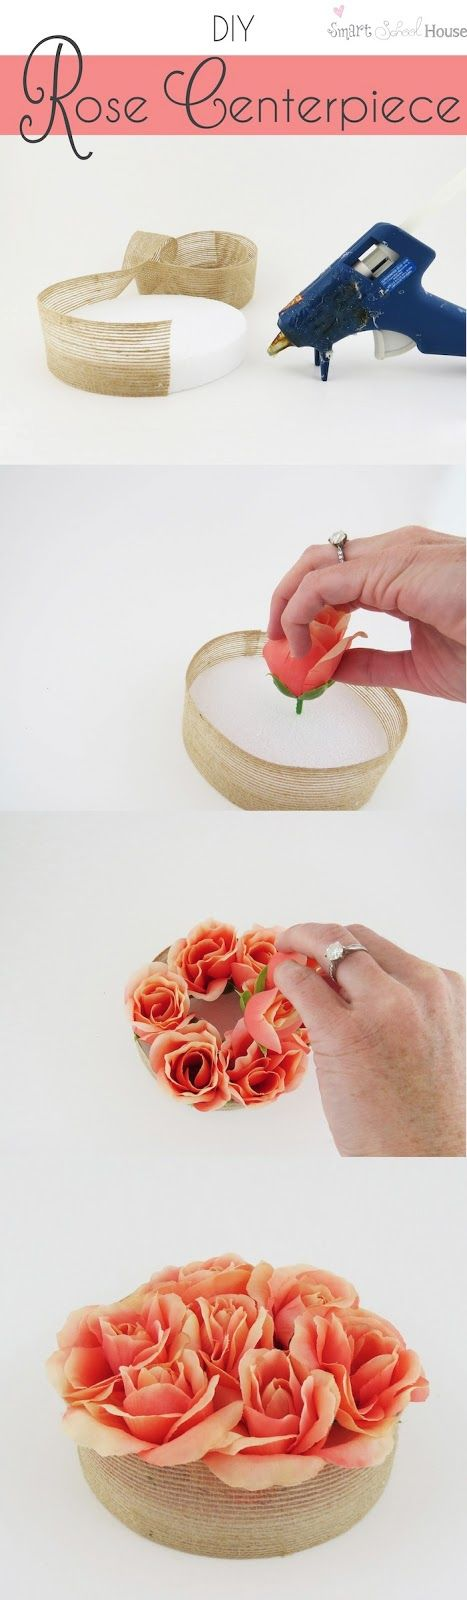 MUST DO THIS! #DIY Rose Centerpiece.Most items are from the dollar store